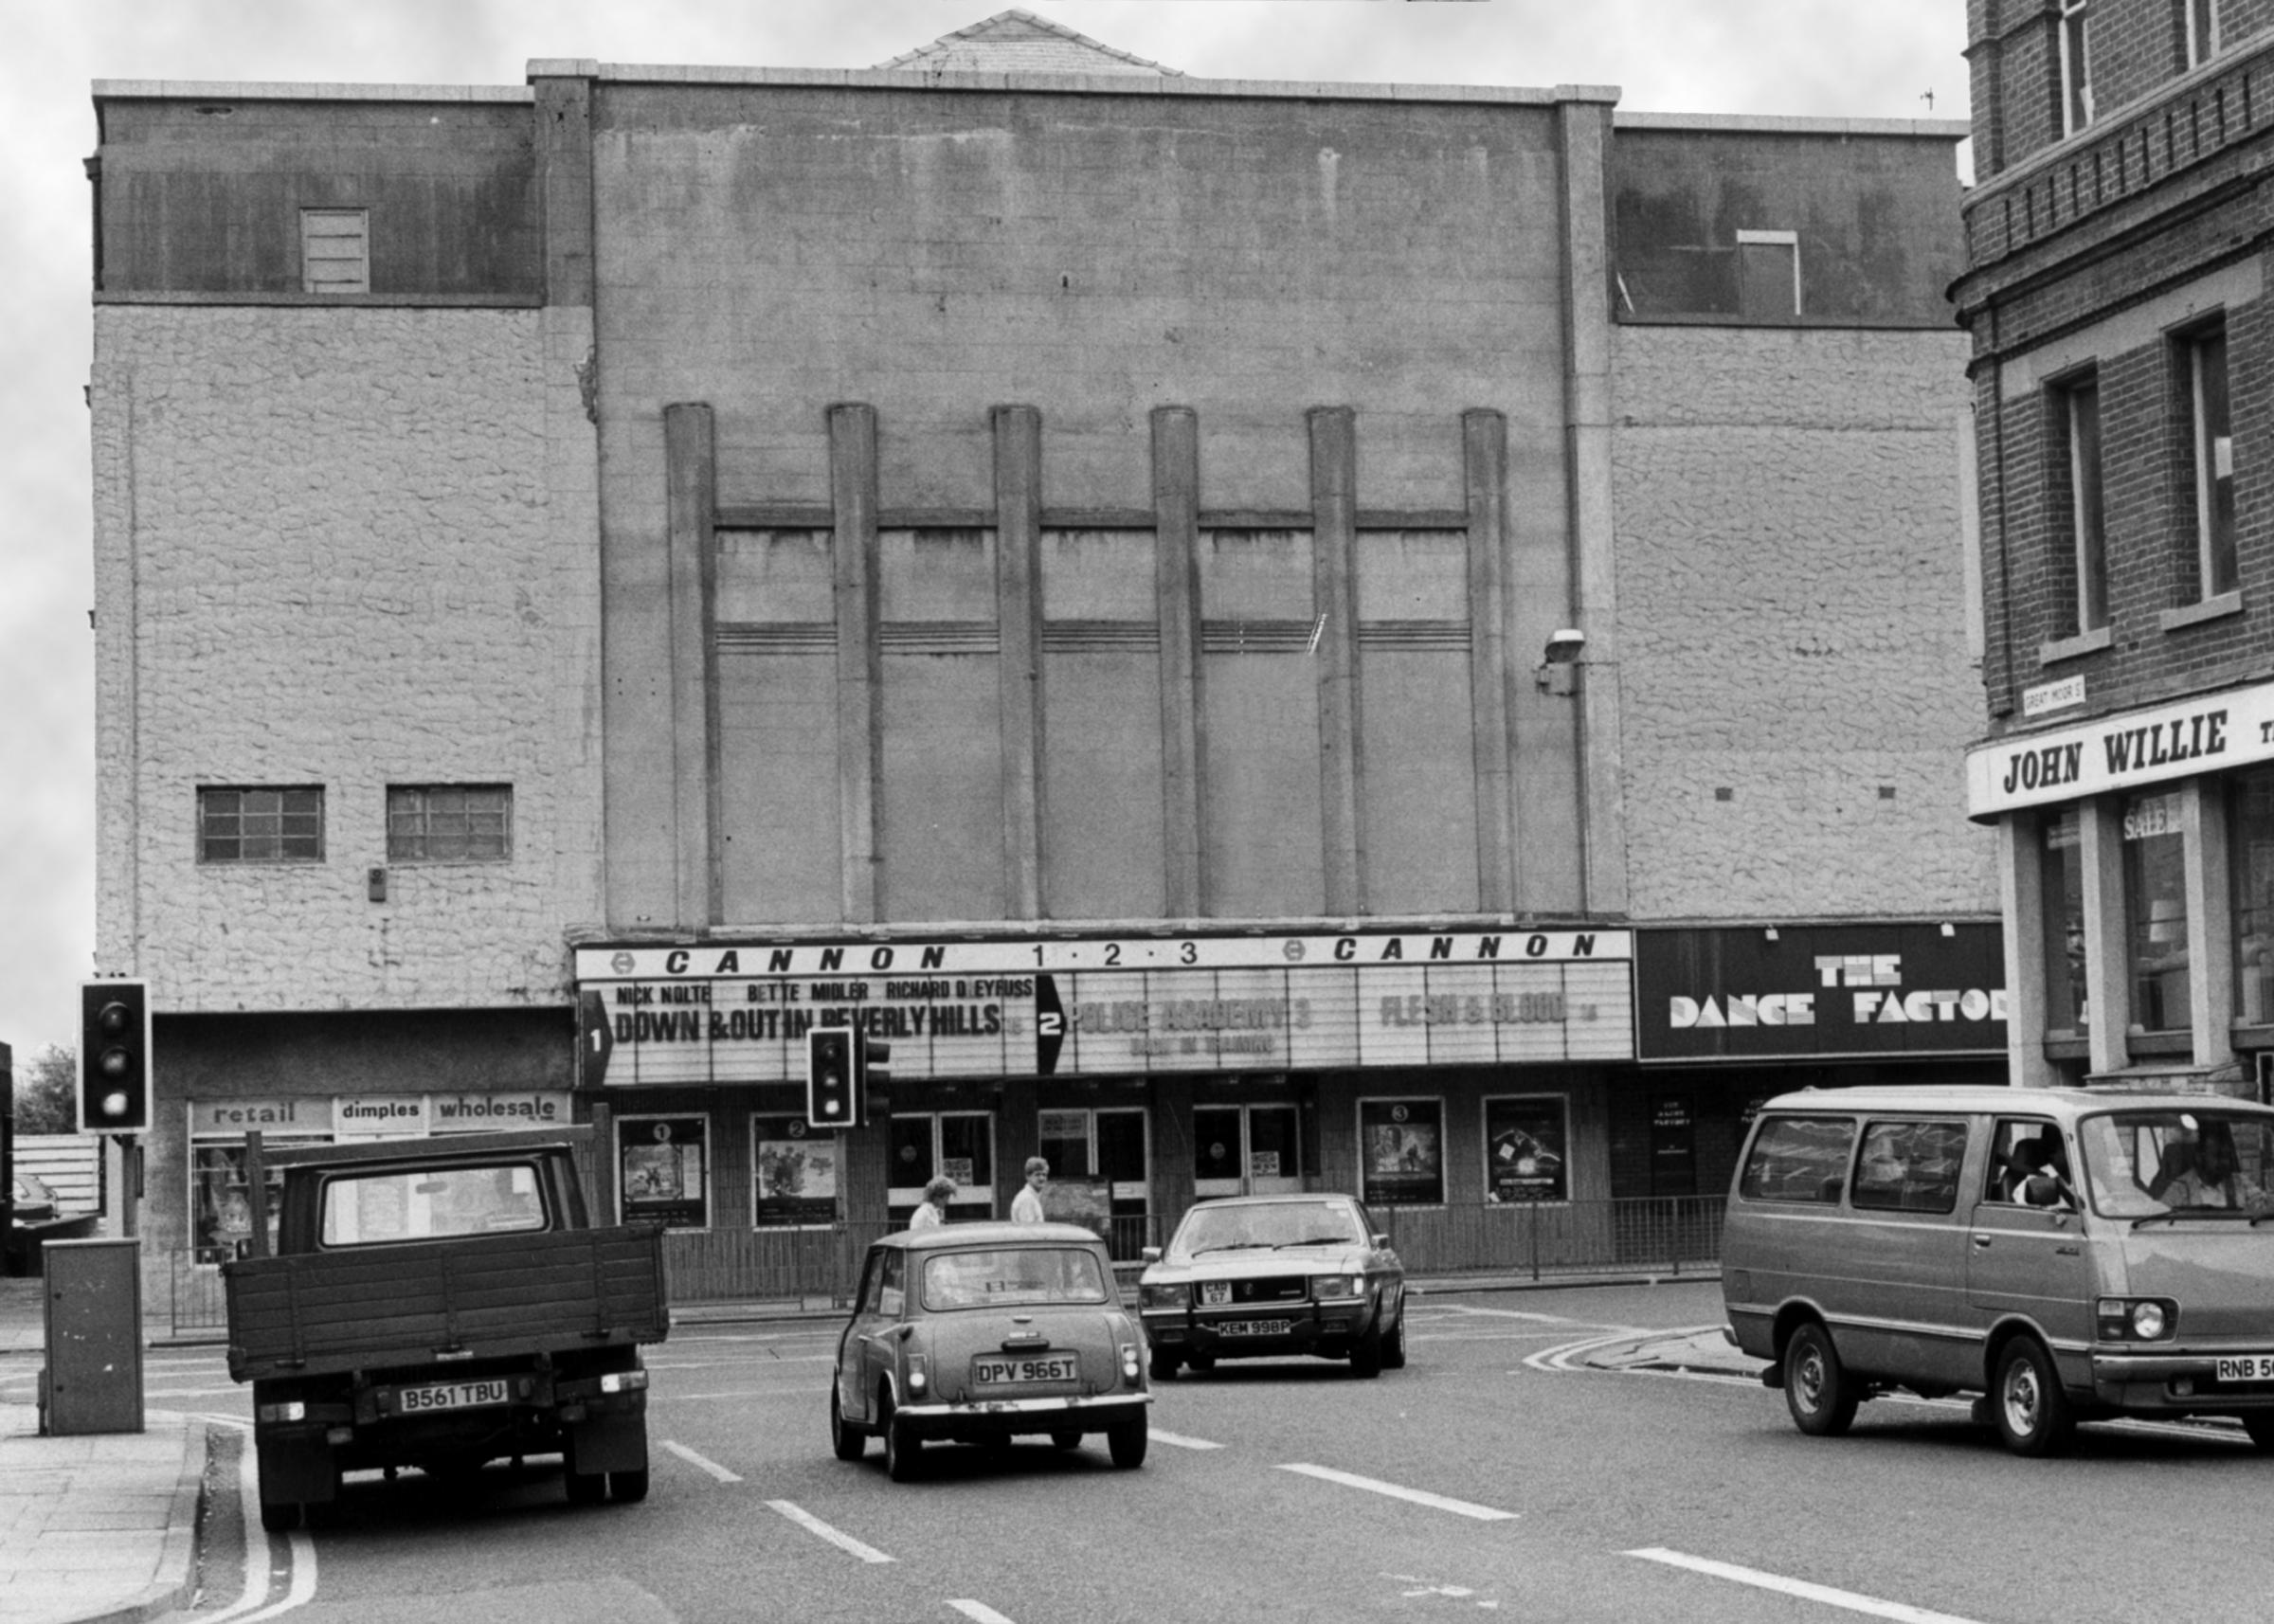 The Bolton News: The Cannon, formerly the Lido, was the last cinema to close in the town centre